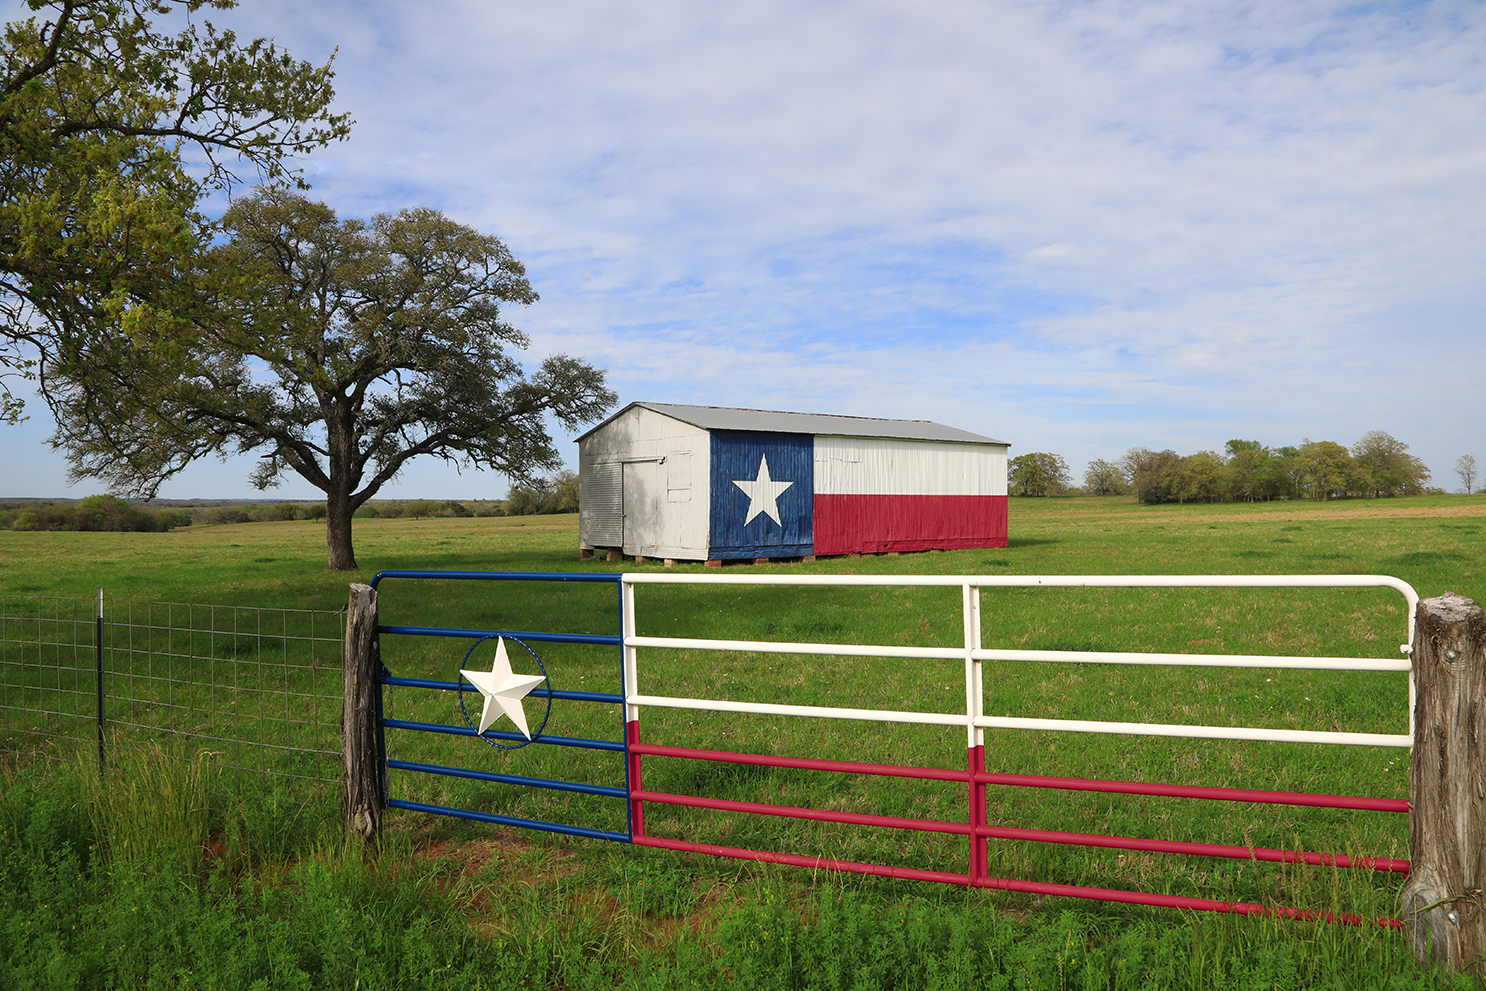 Photos of Texas: My Own and Historical